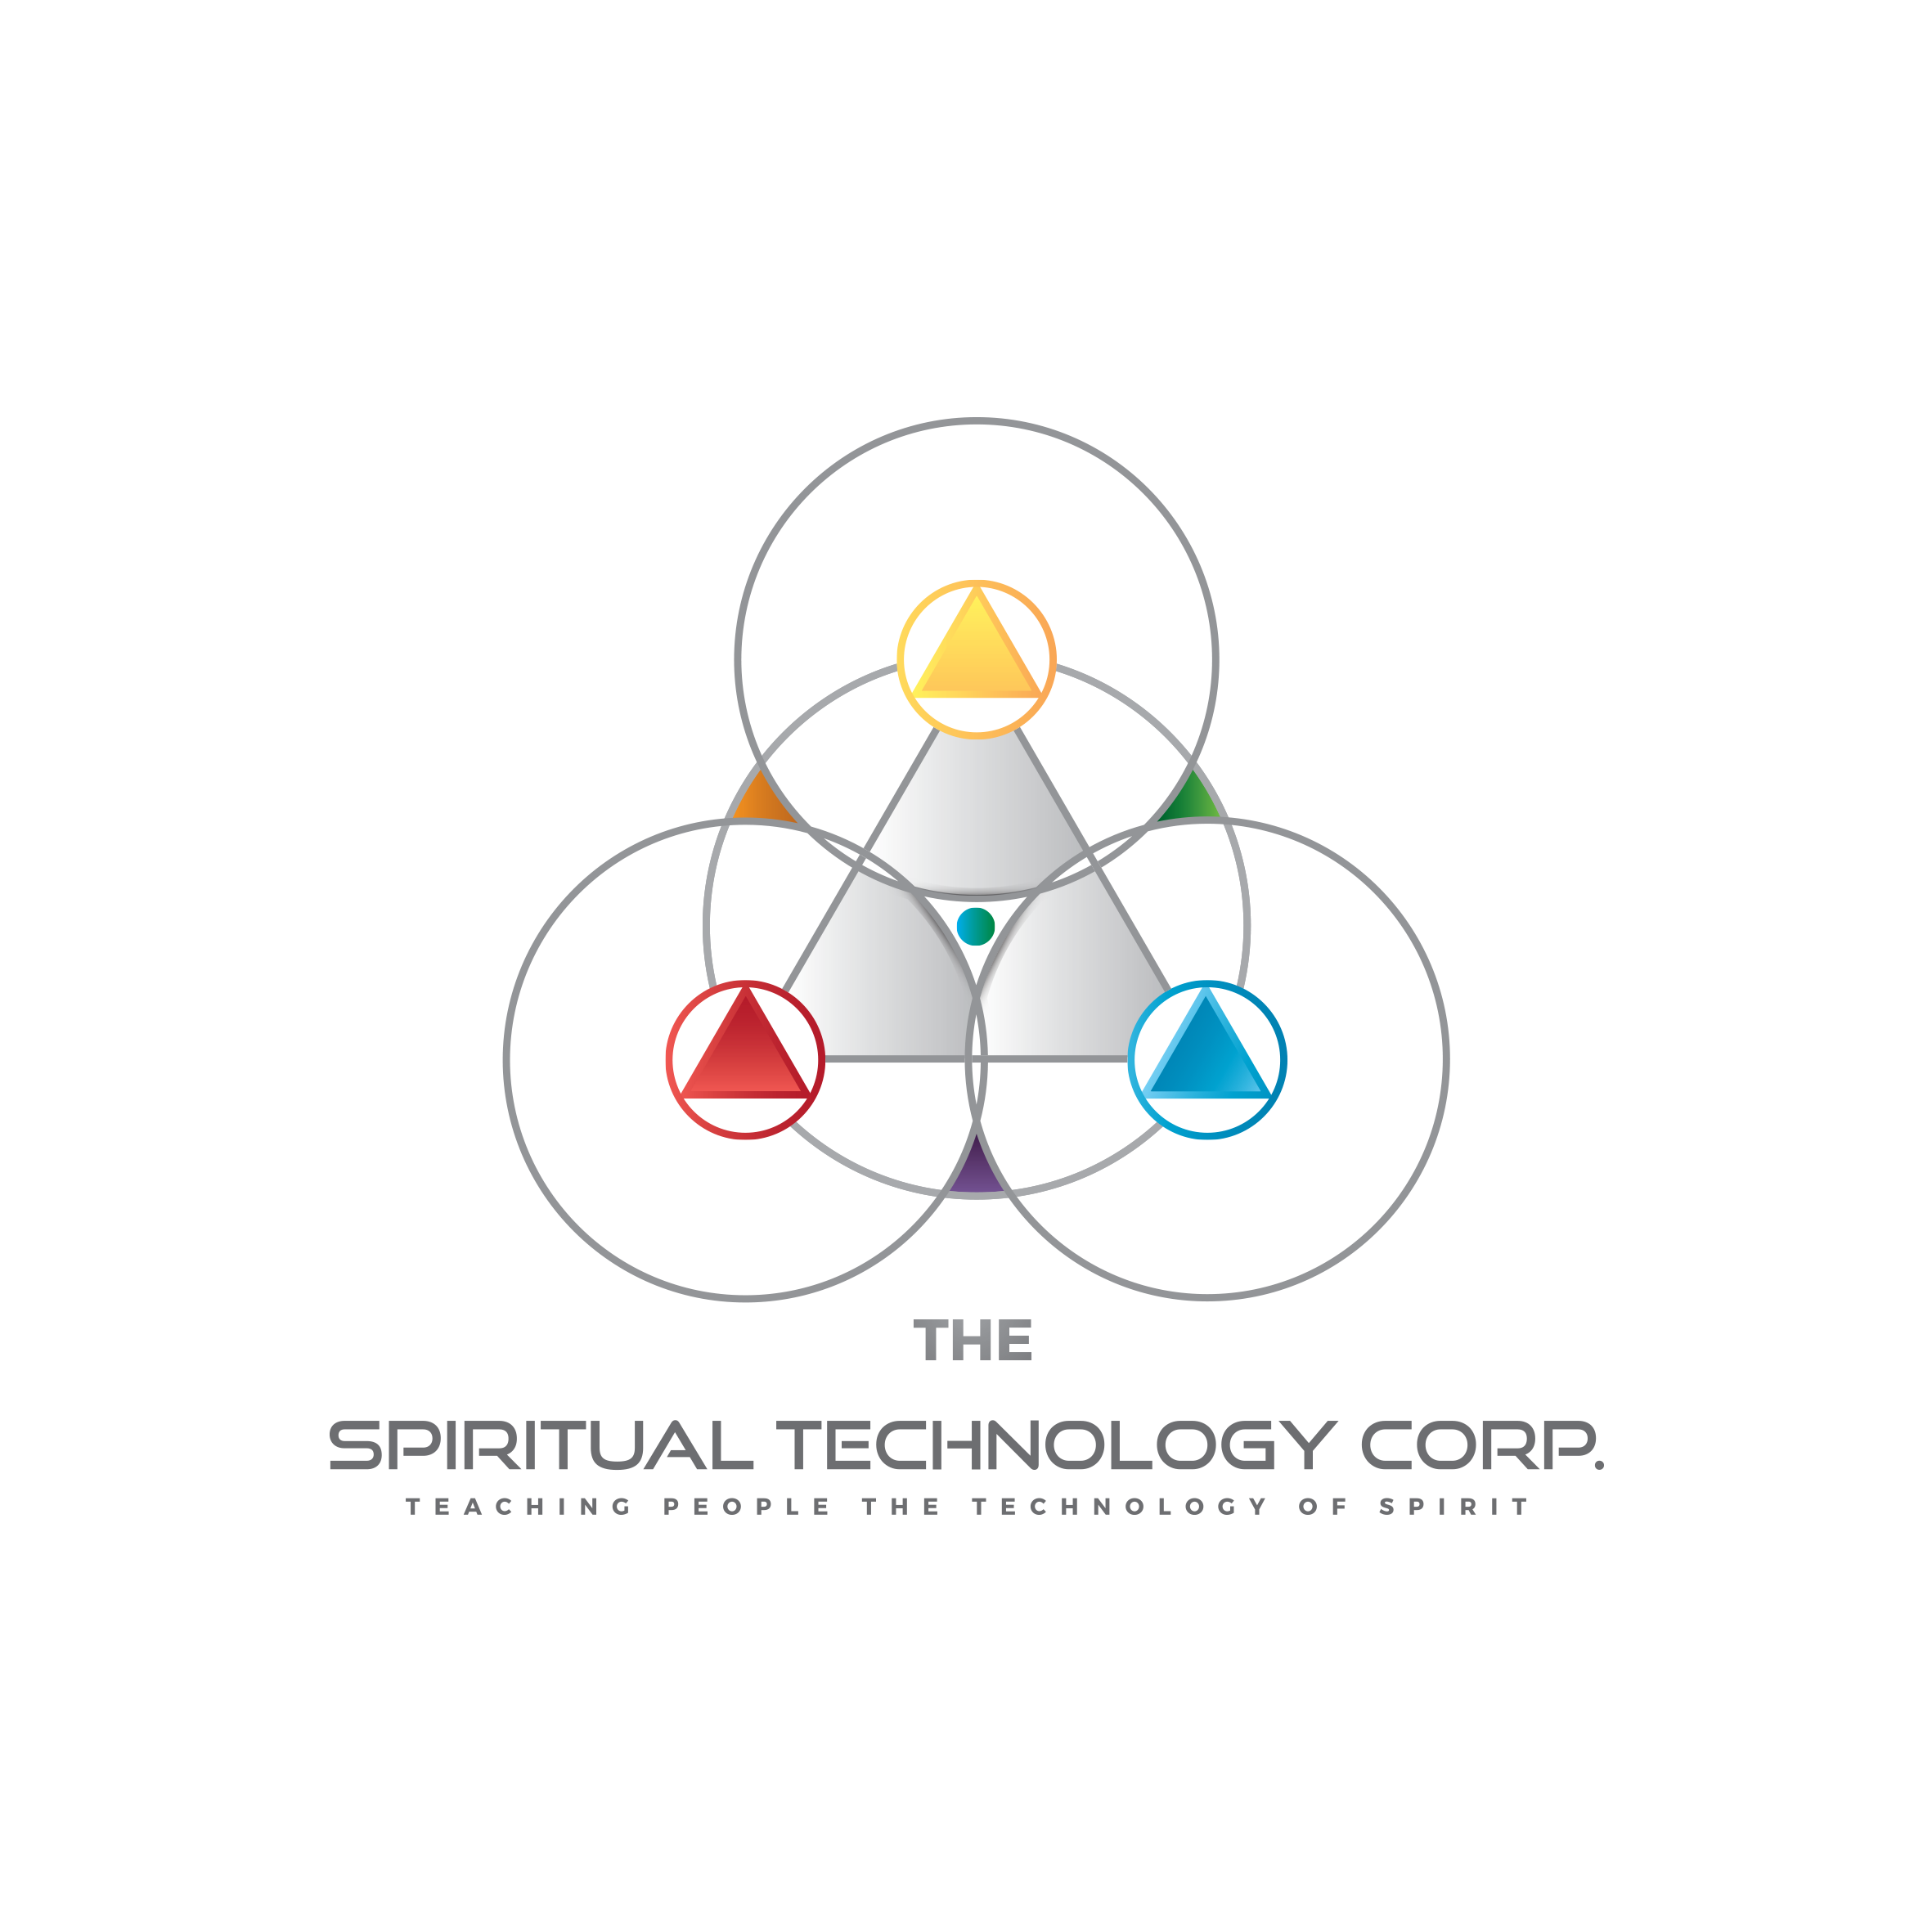 The Spiritual Technology Corp